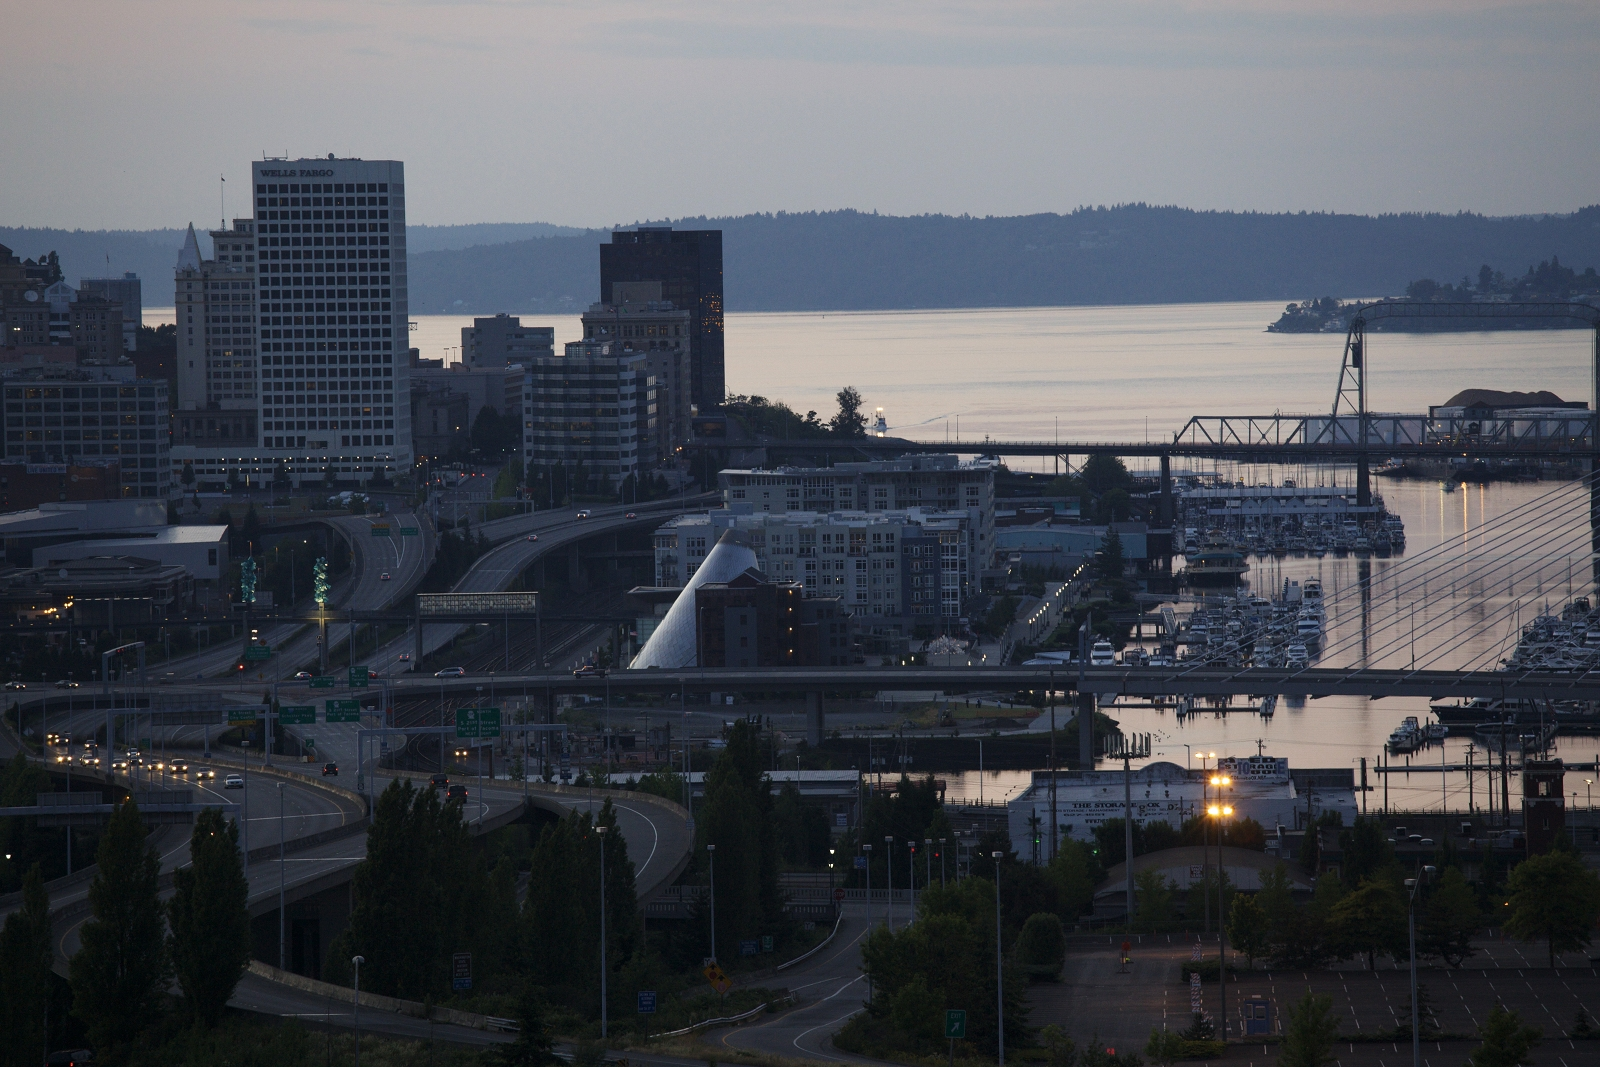 The north end of the neighborhood boasts views of Tacoma's downtown skyline and port areas.